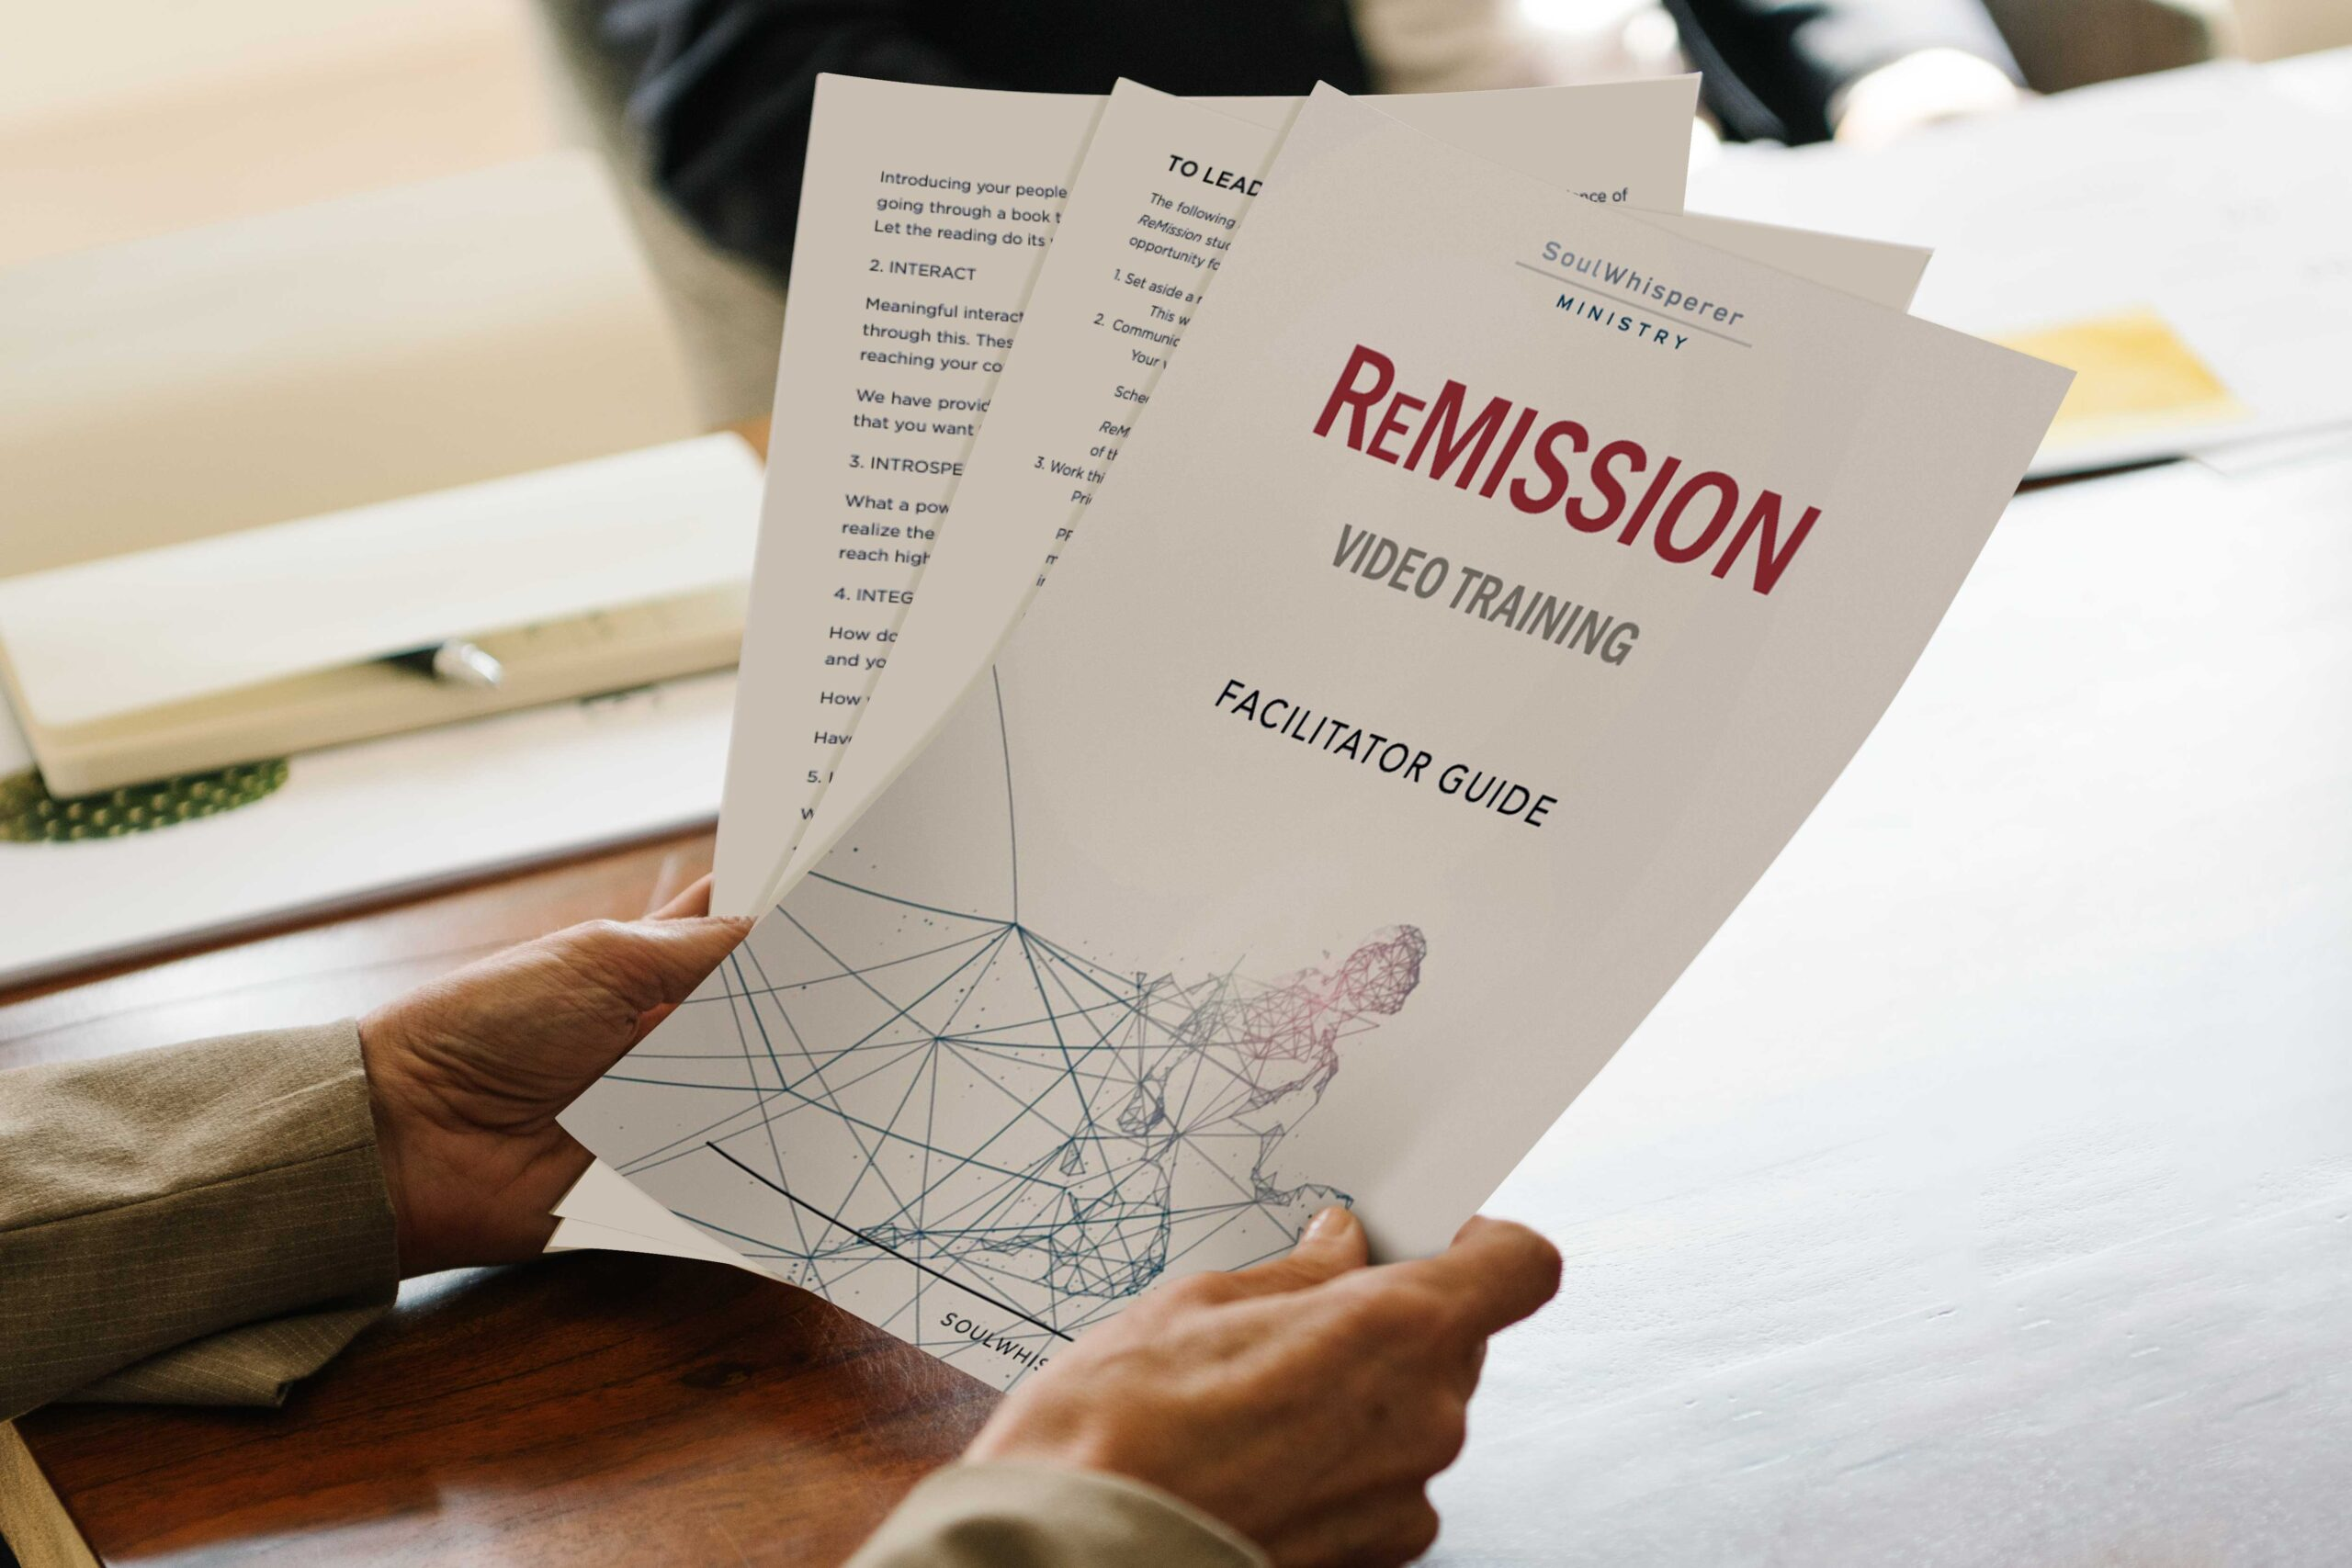 ReMission-Guide